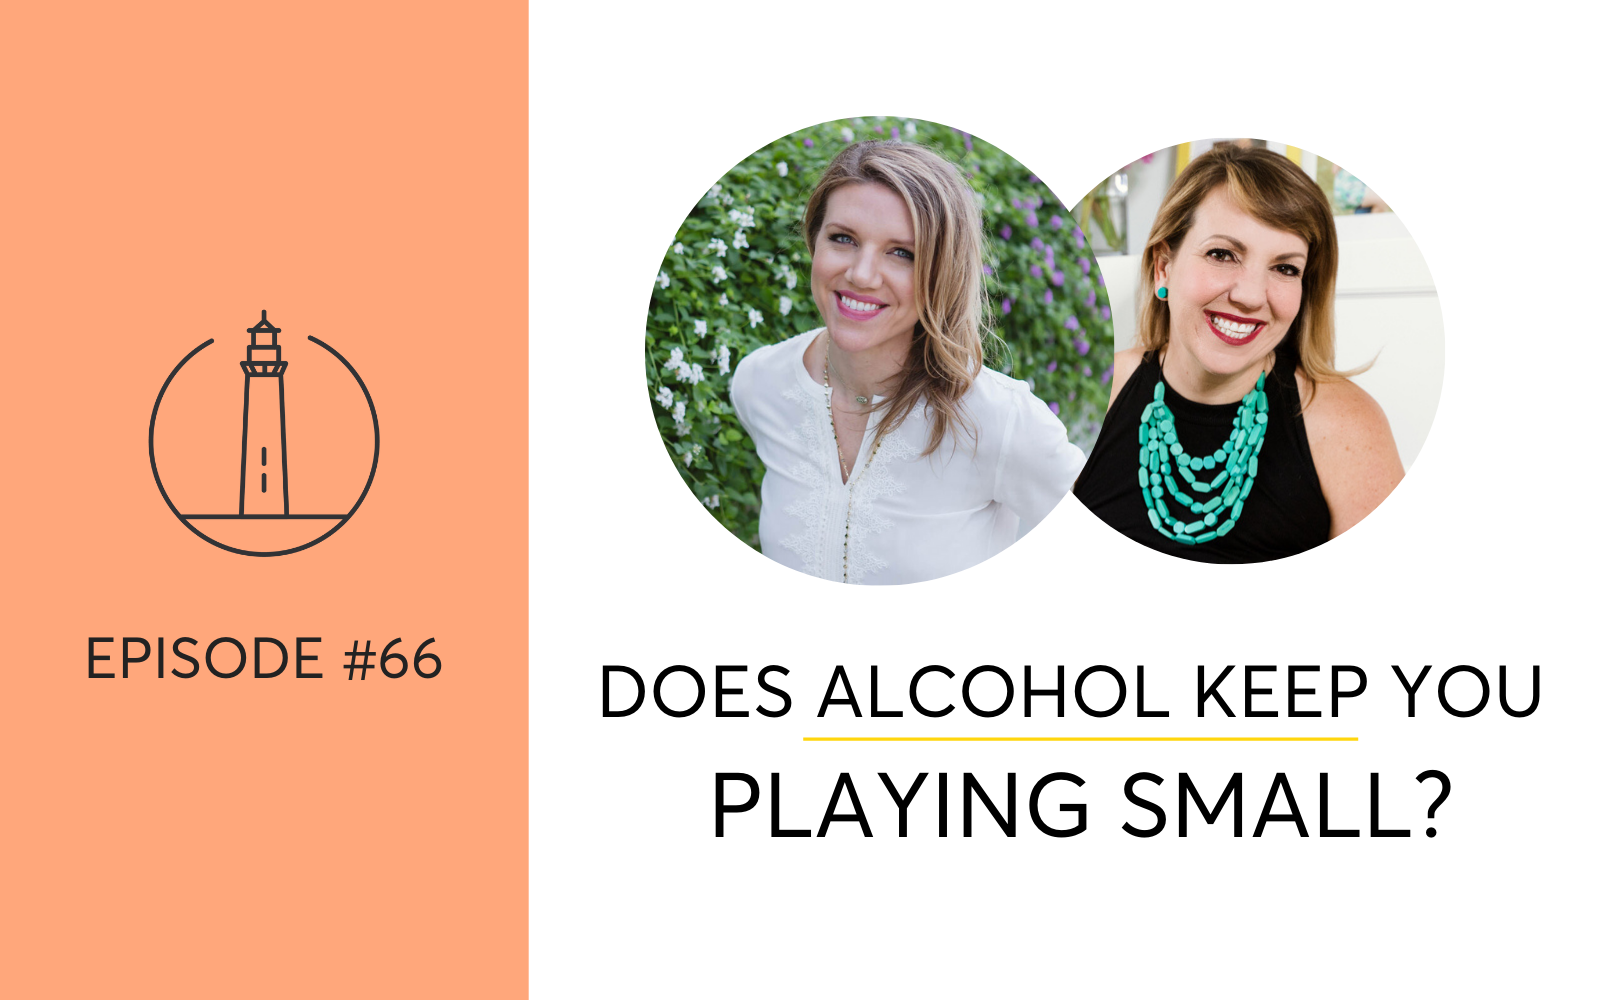 Does Alcohol Keep You Playing Small?